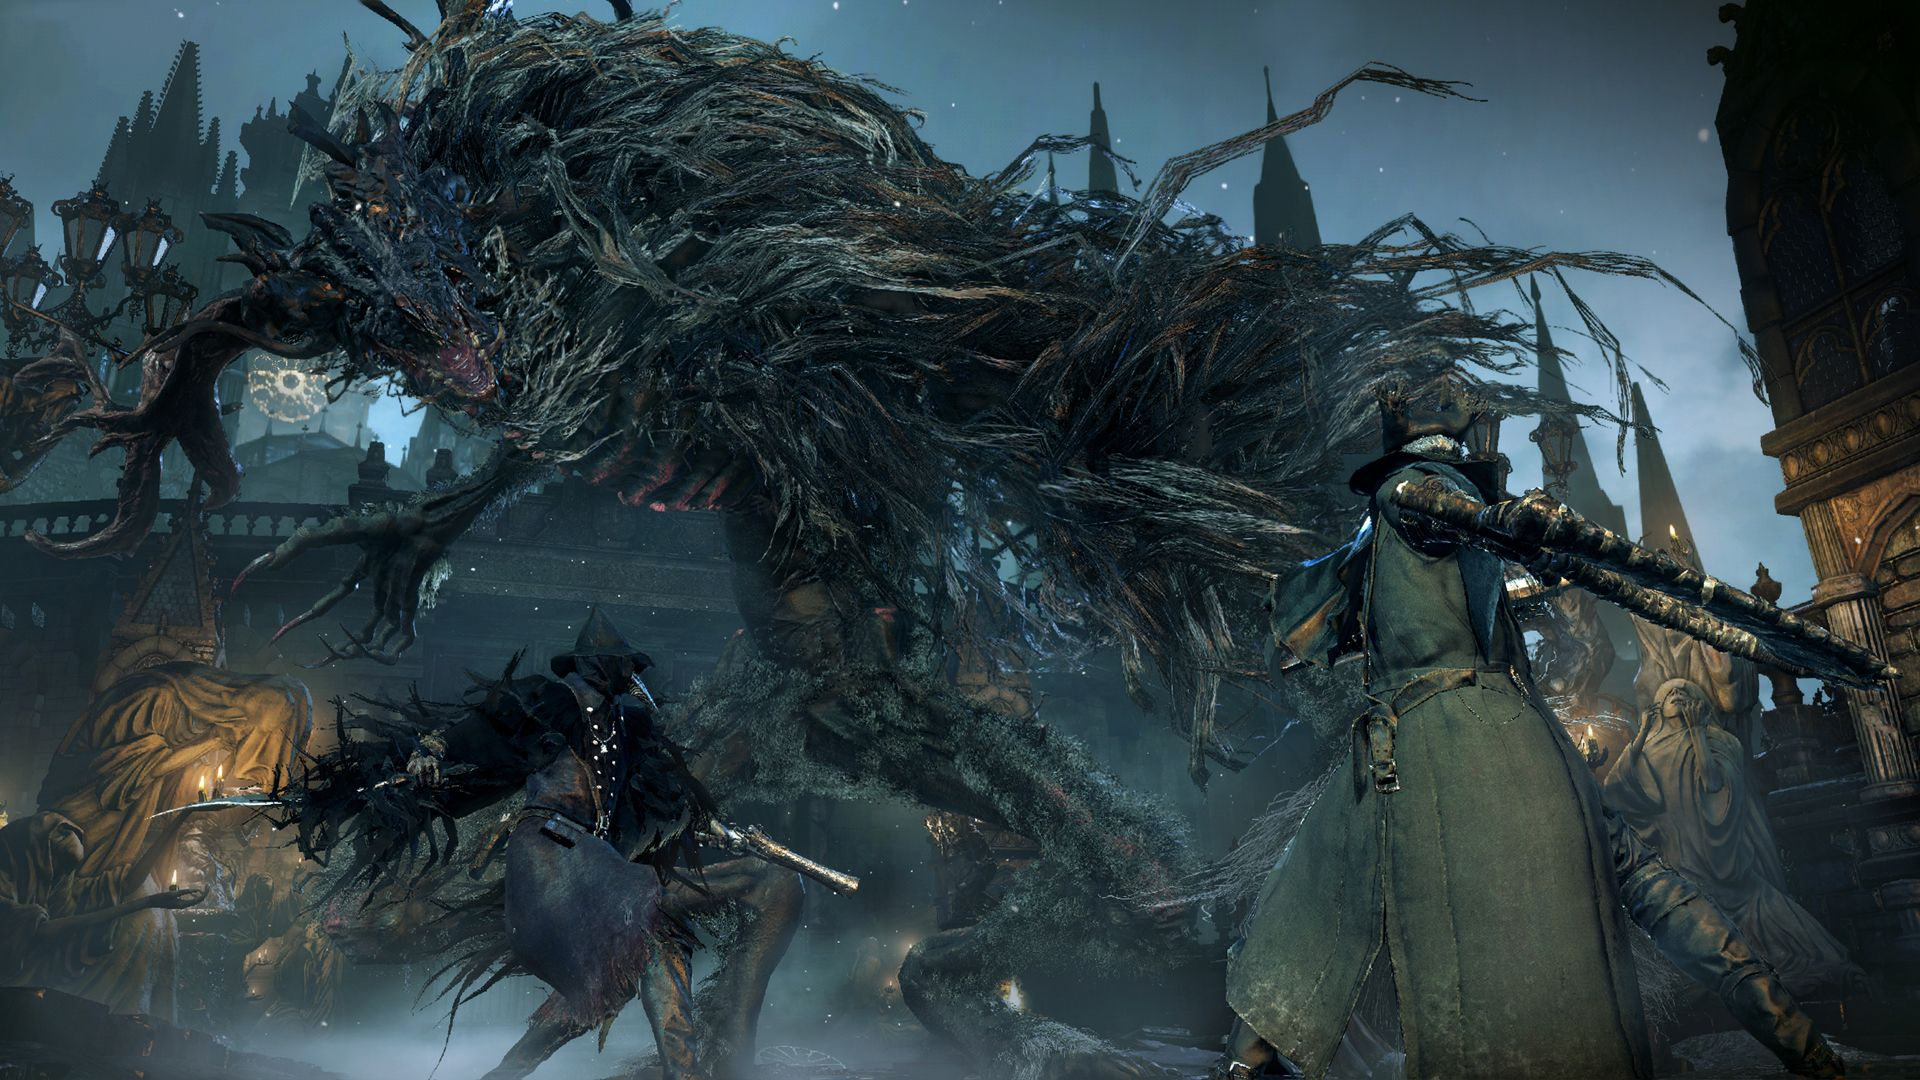 Cleric Beast Bloodborne Bloodborne Ps4 Online Video Games